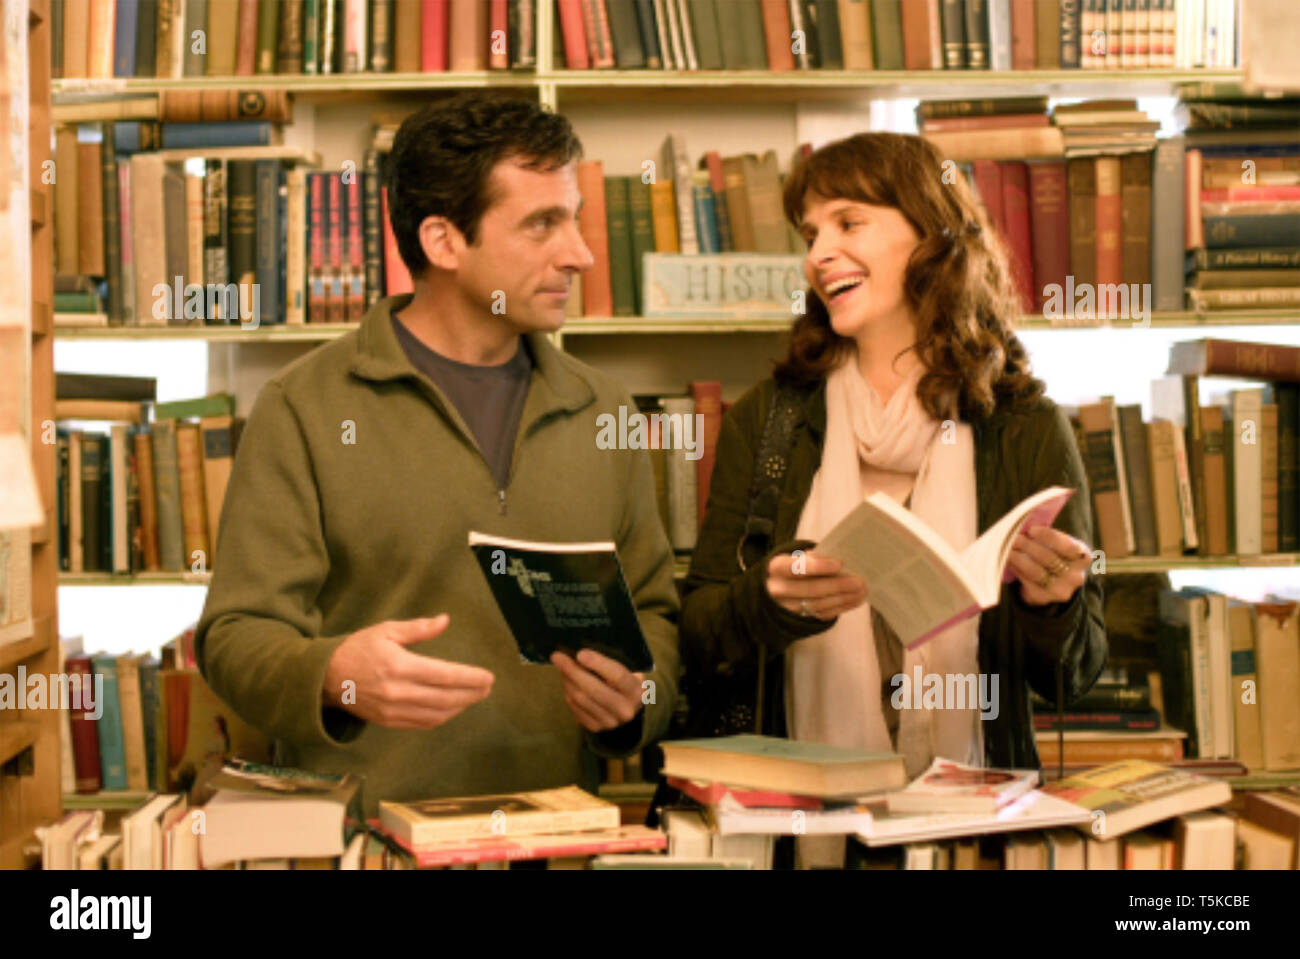 DAN IN REAL LIFE 2007 Touchstone film with Juliette Binoche and Steve Carell - Stock Image